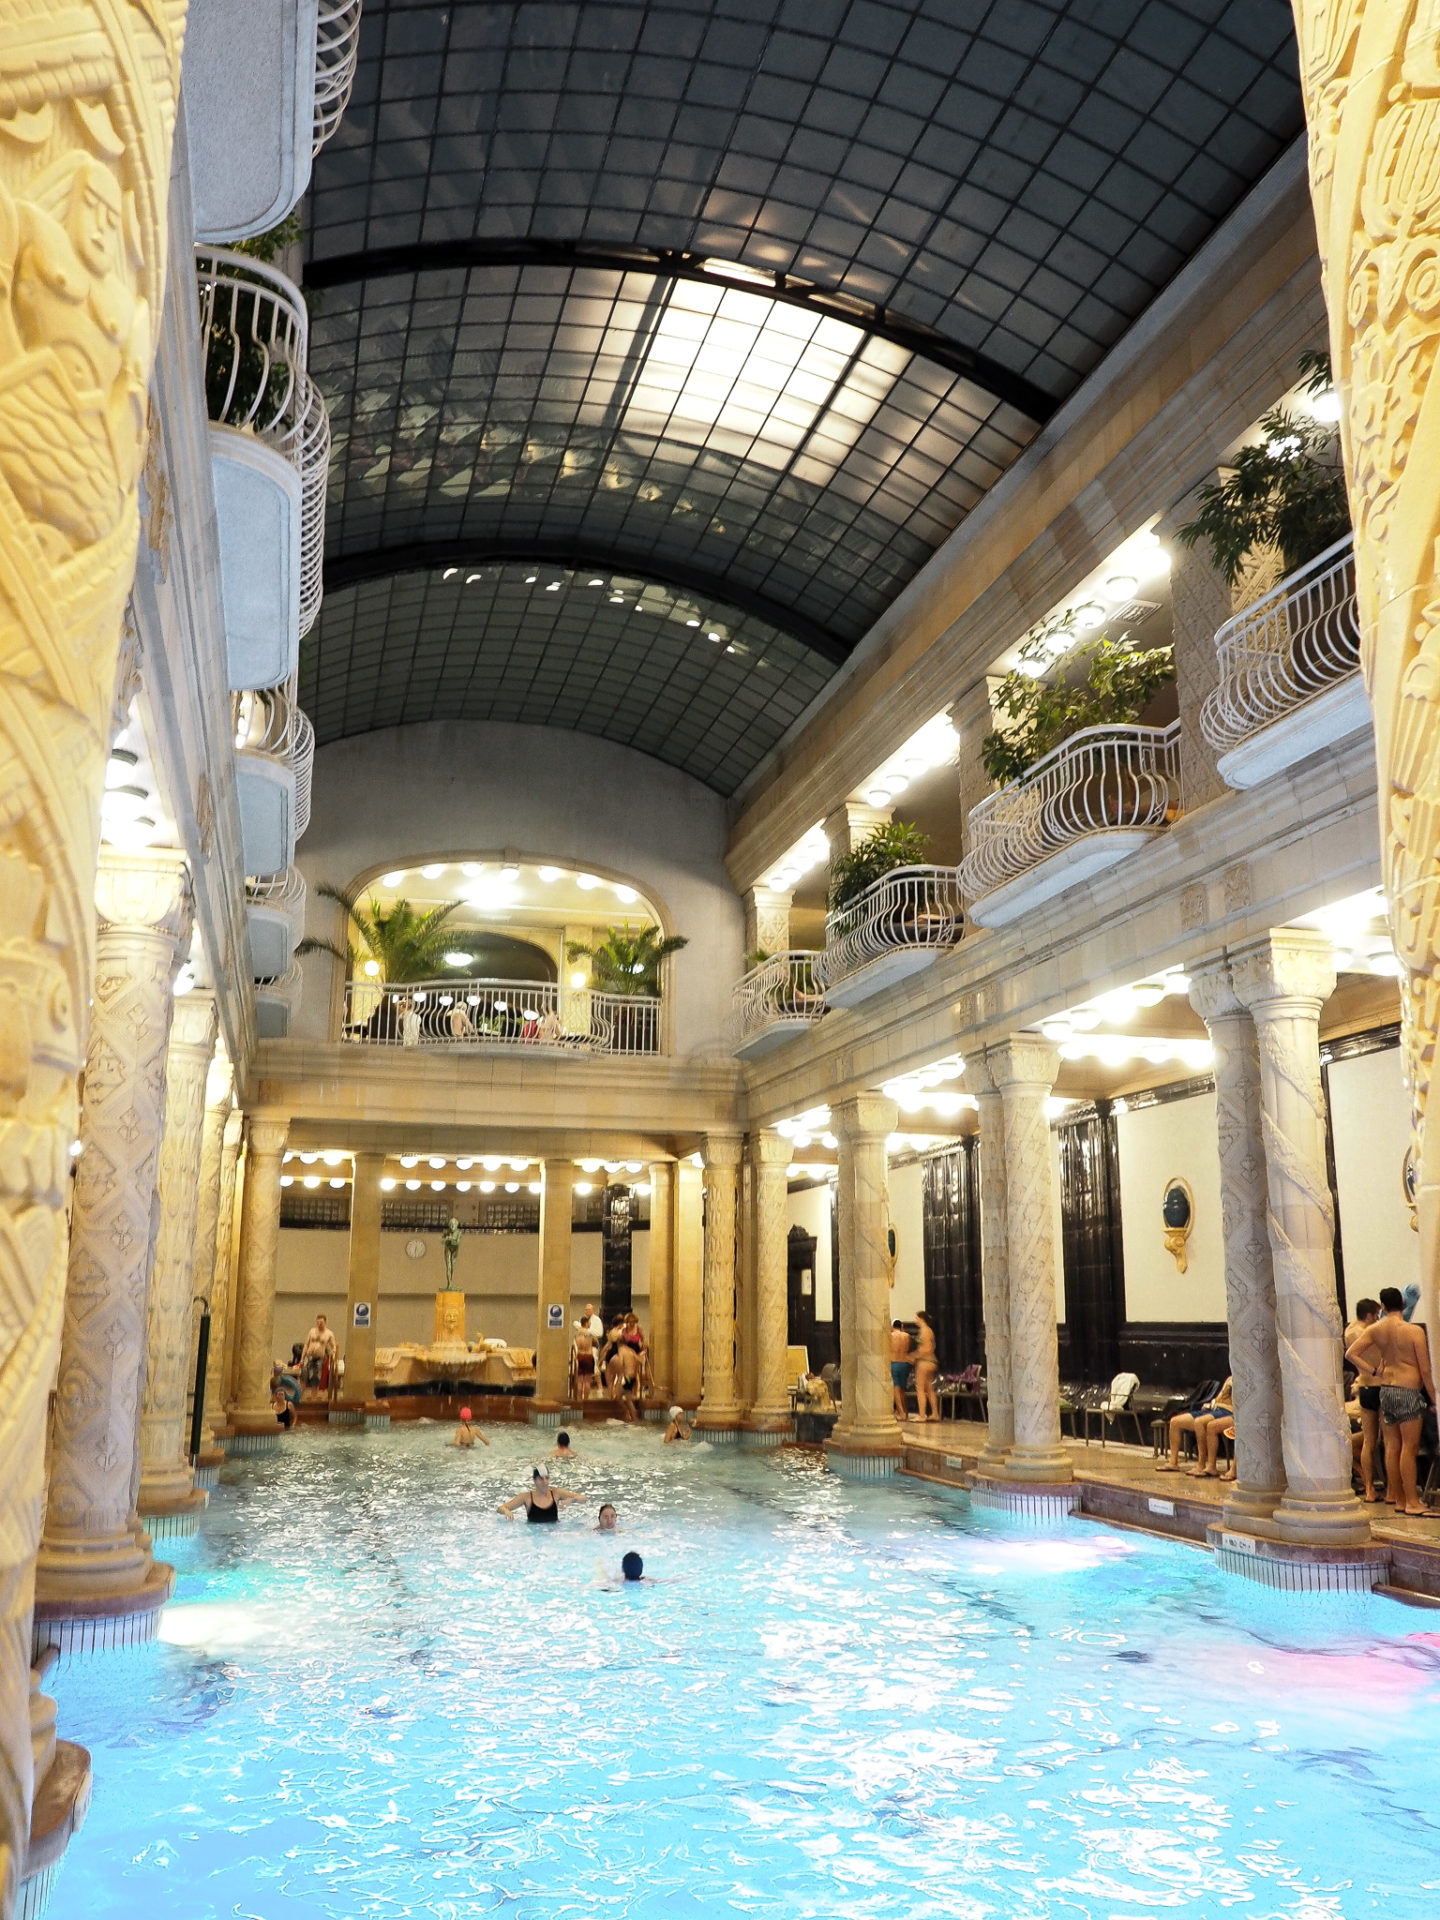 Gellért Spa swimming pool budapest review robbienroute travel luxury blog